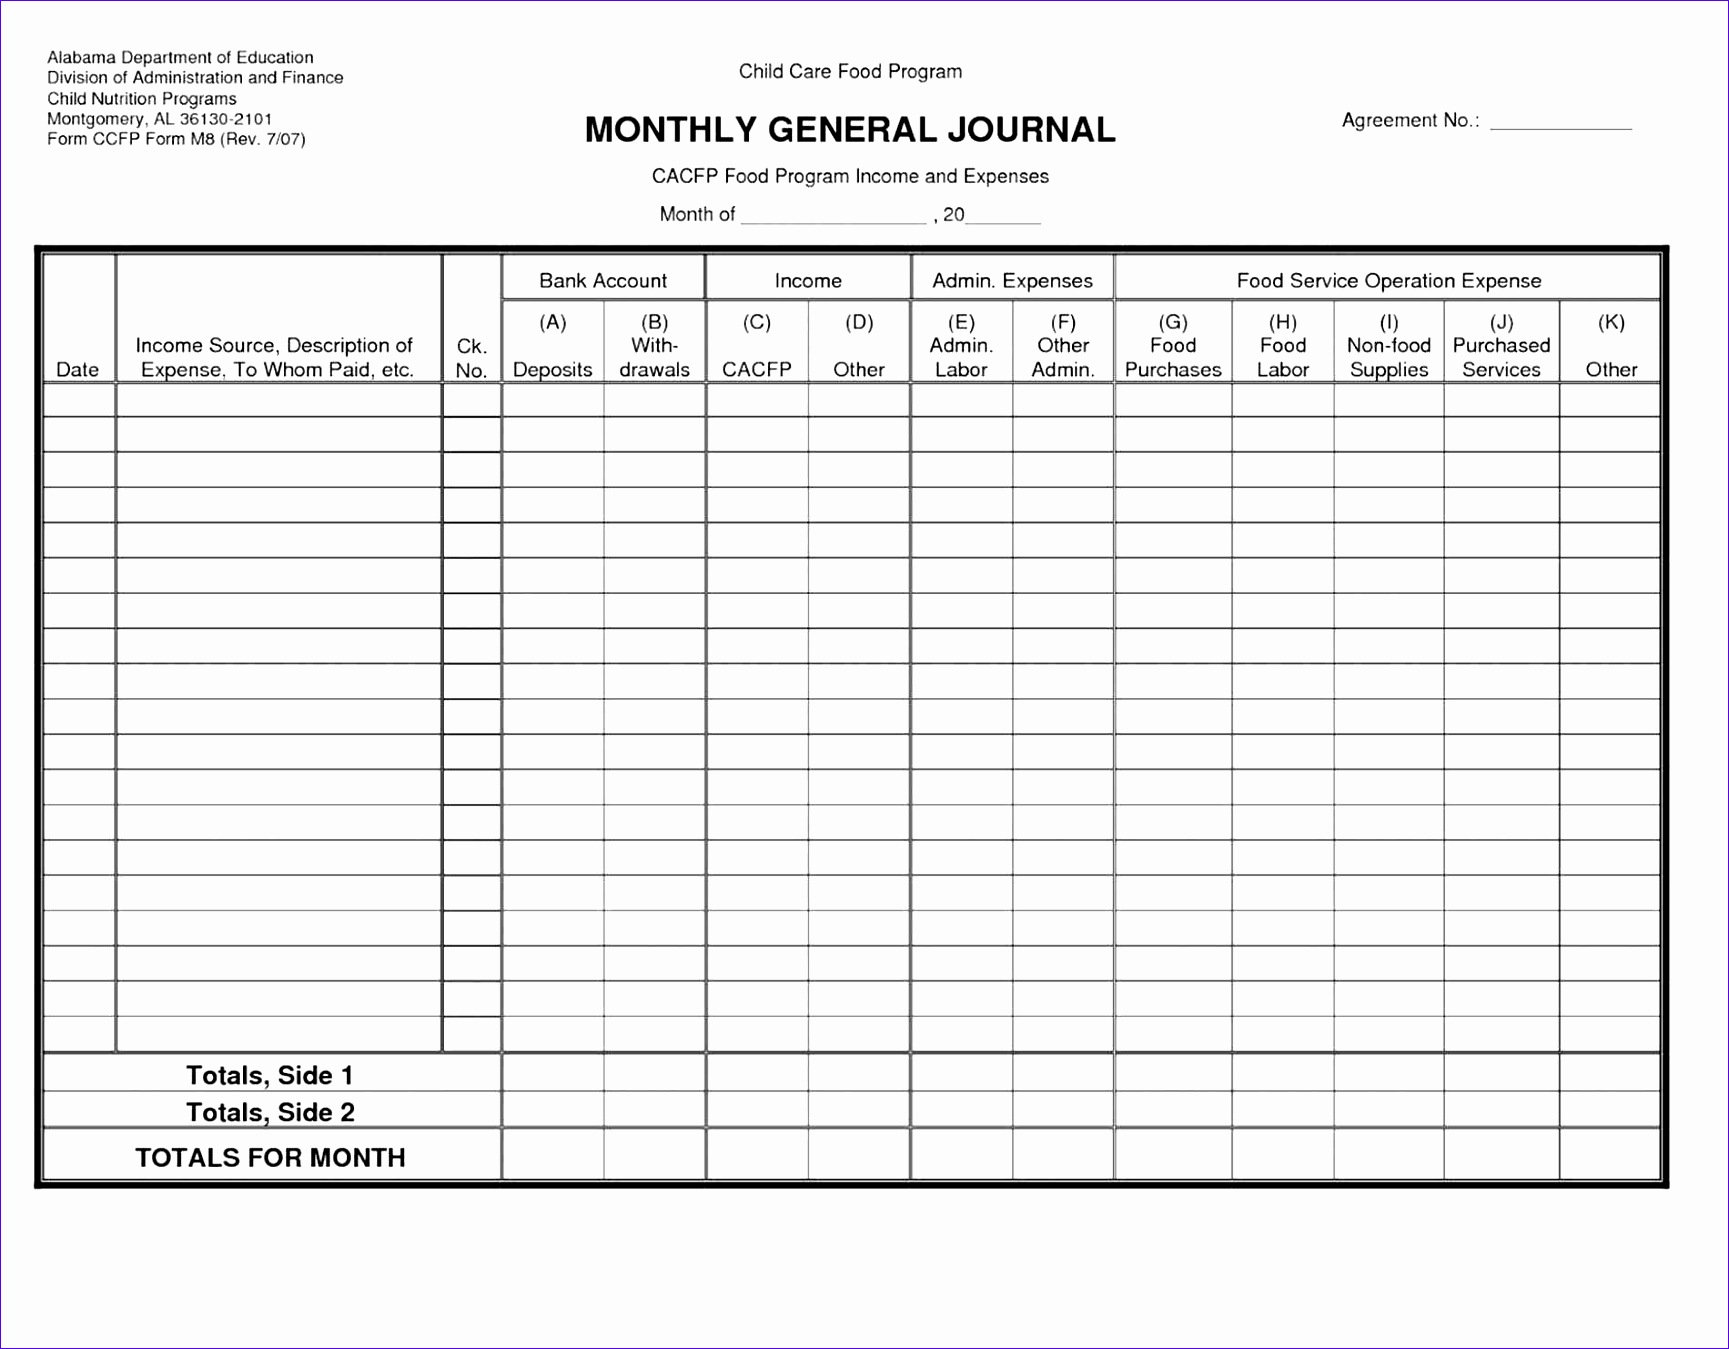 throughout xl sheet microsoft Microsoft Excel Template Download excel spreadsheet spreadsheets throughout xl sheet templates for accounting small business asepag excel Microsoft